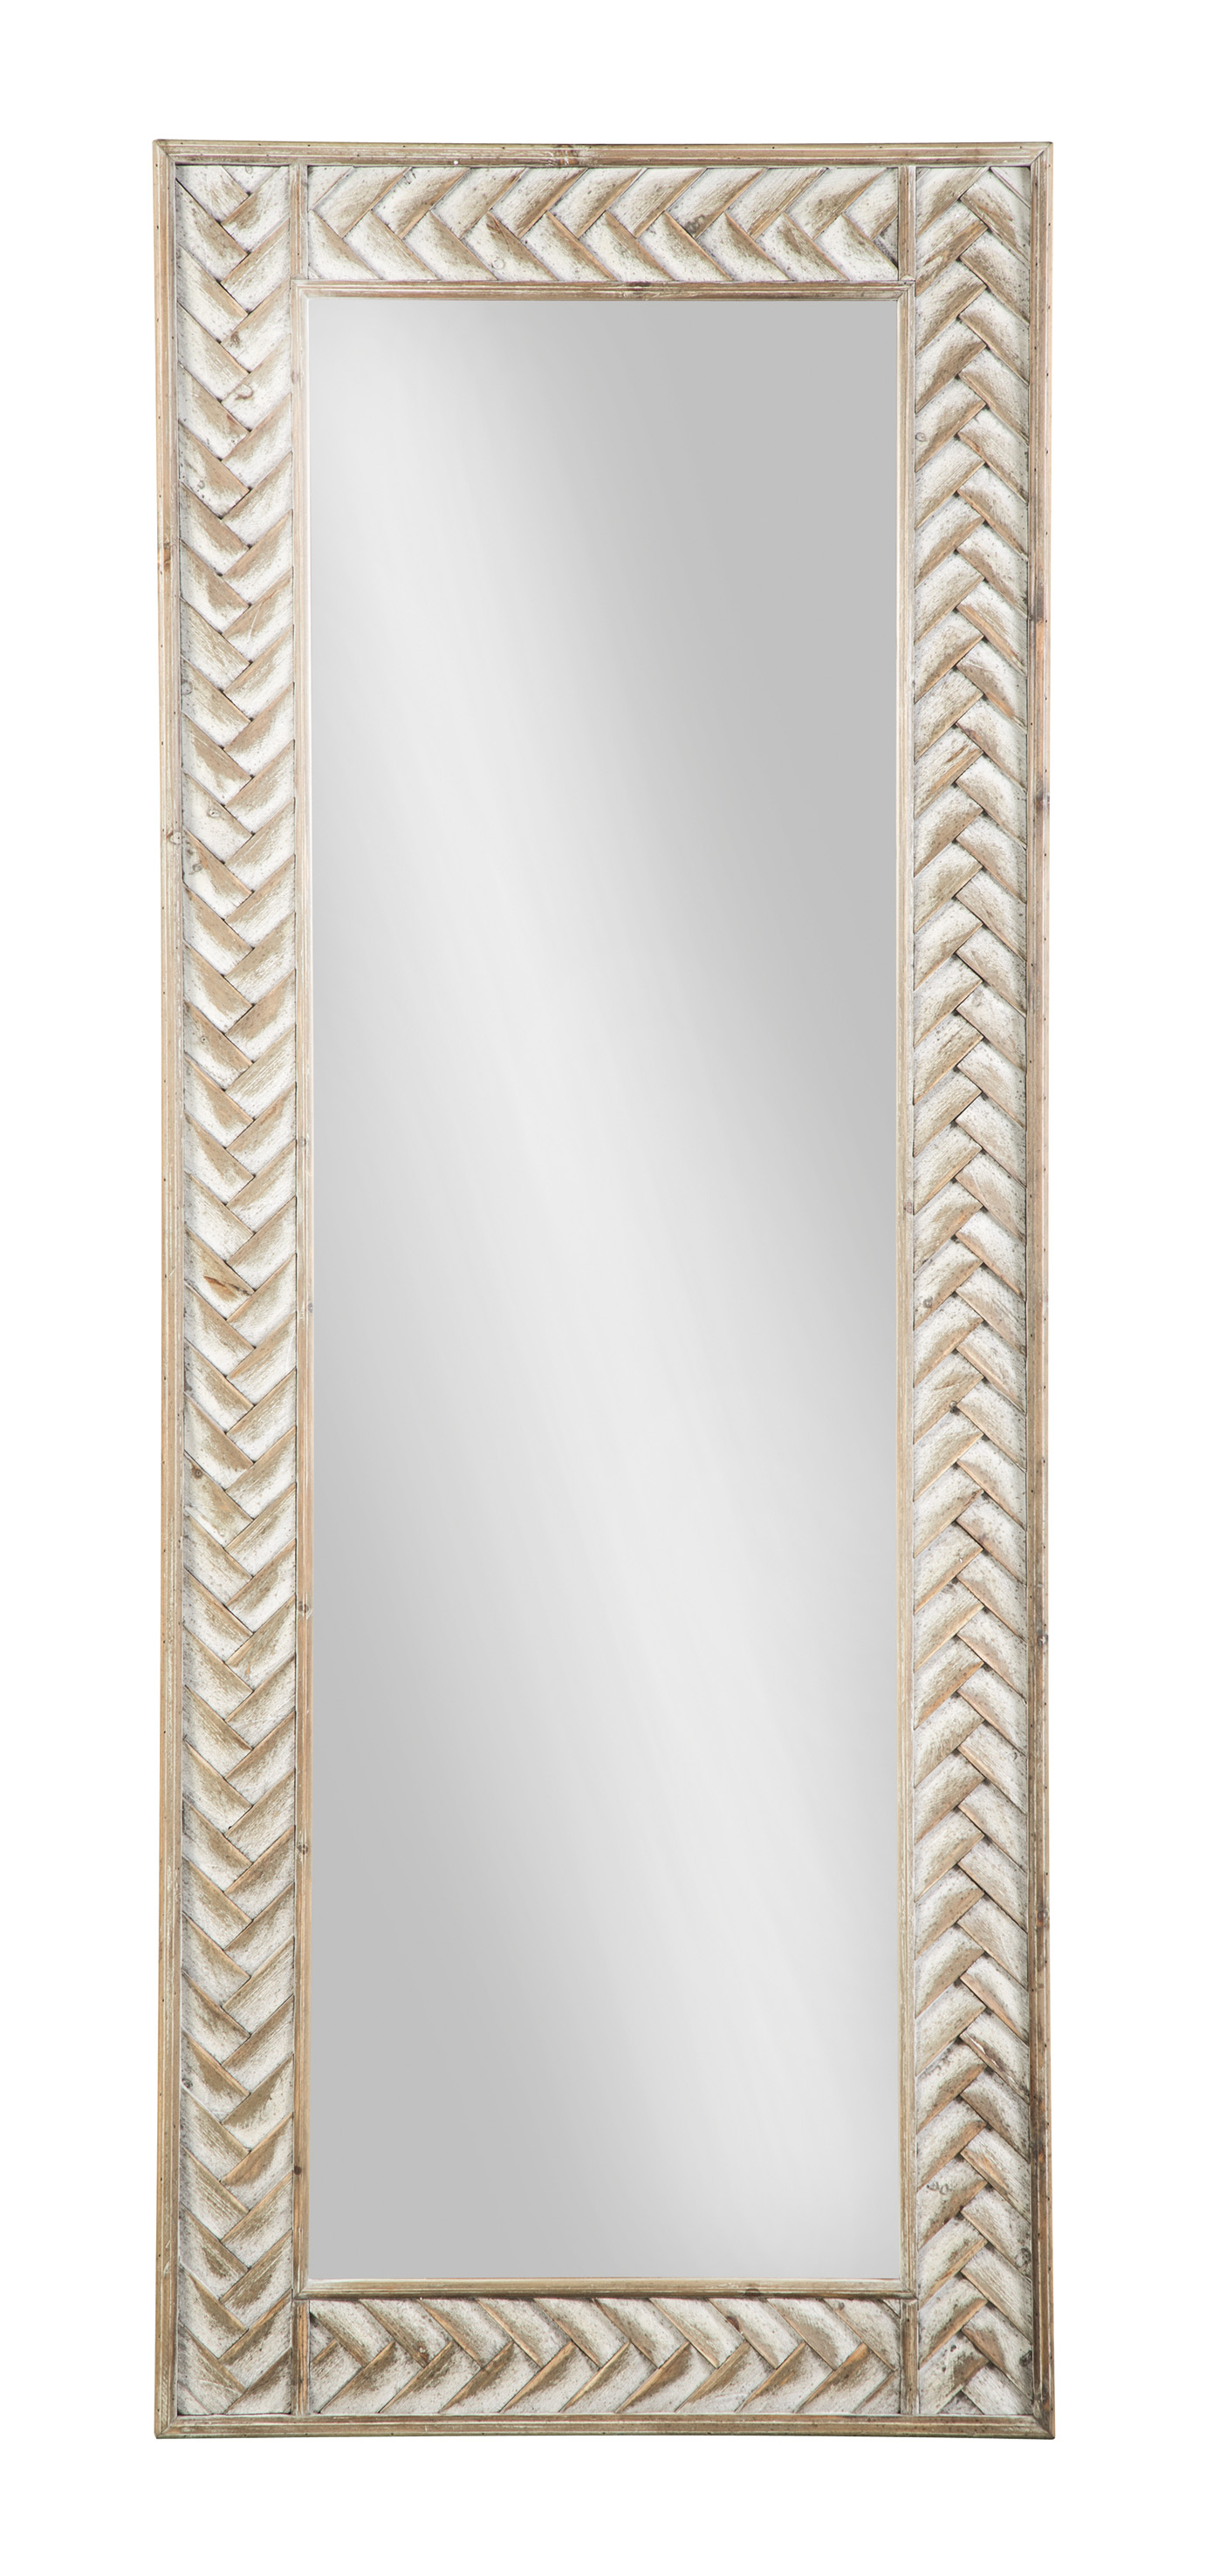 Nash Natural Accent Mirror,Signature Design By Ashley